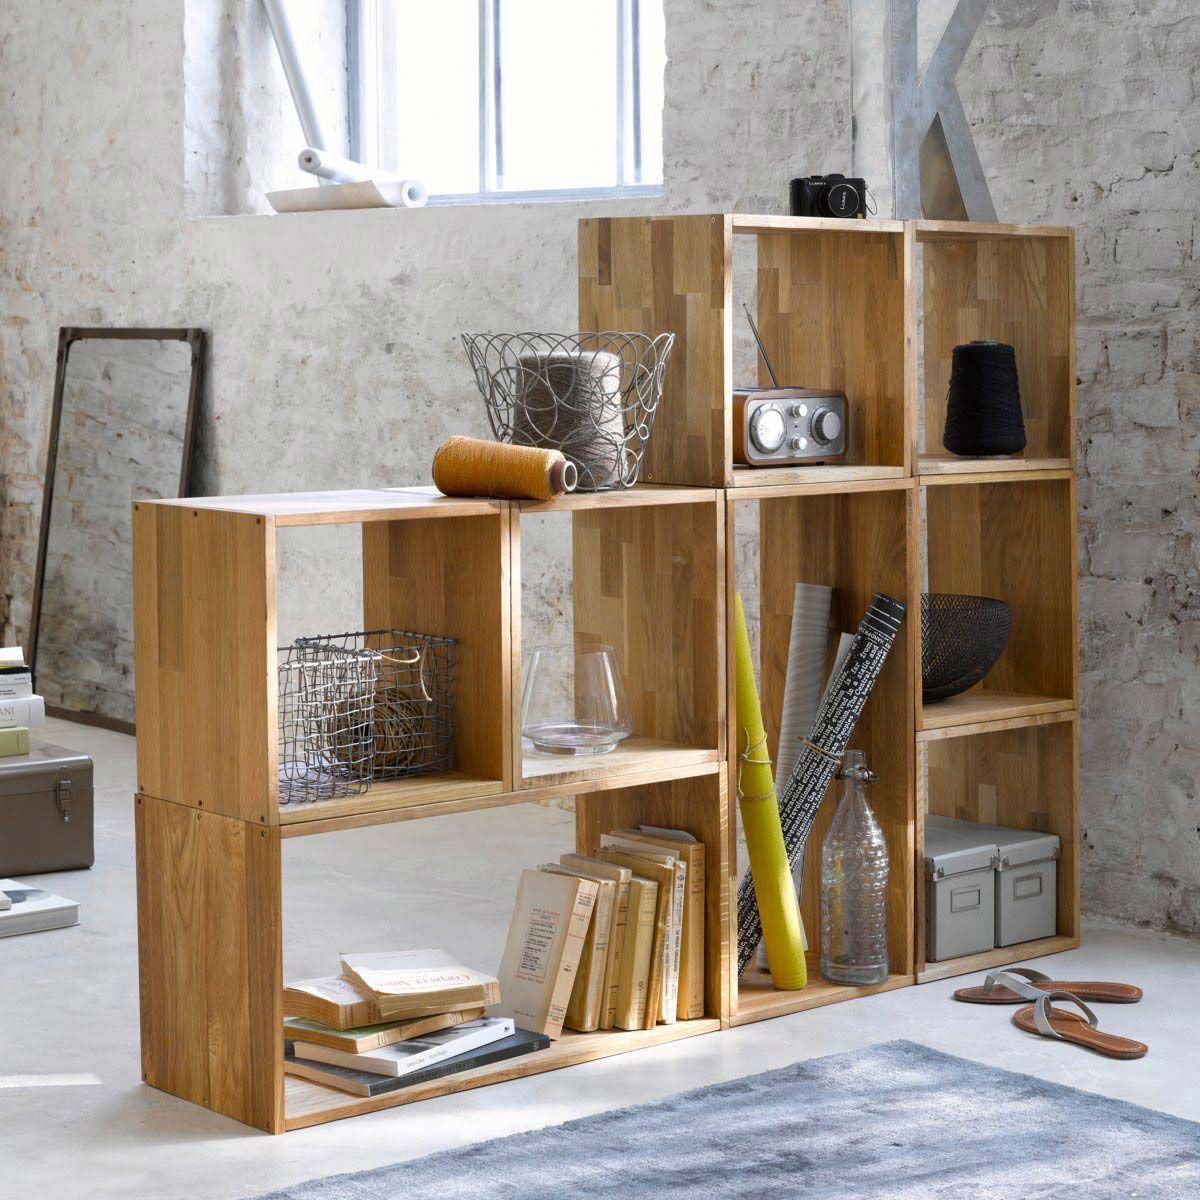 37 Idees D Etagere Et Bibliotheque Modulable Cube Rangement Bibliotheque Modulable Idee Bibliotheque